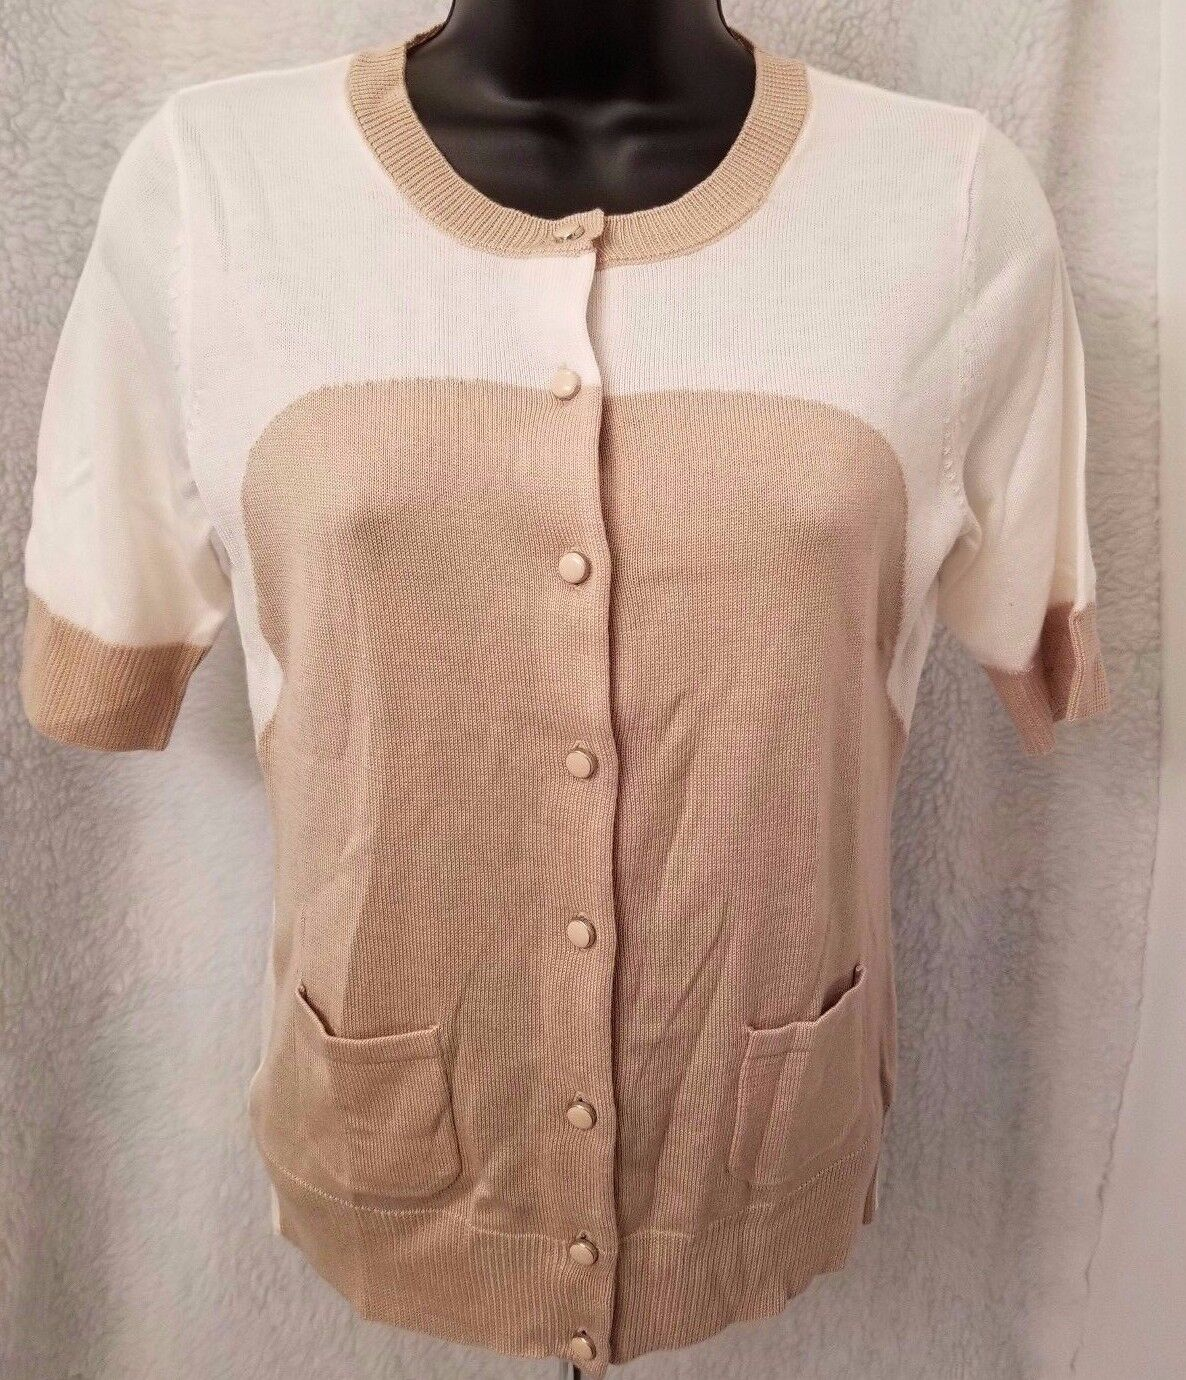 New York & Company NWT Womens Ivory Brown Button Down Sweater Top Size XS